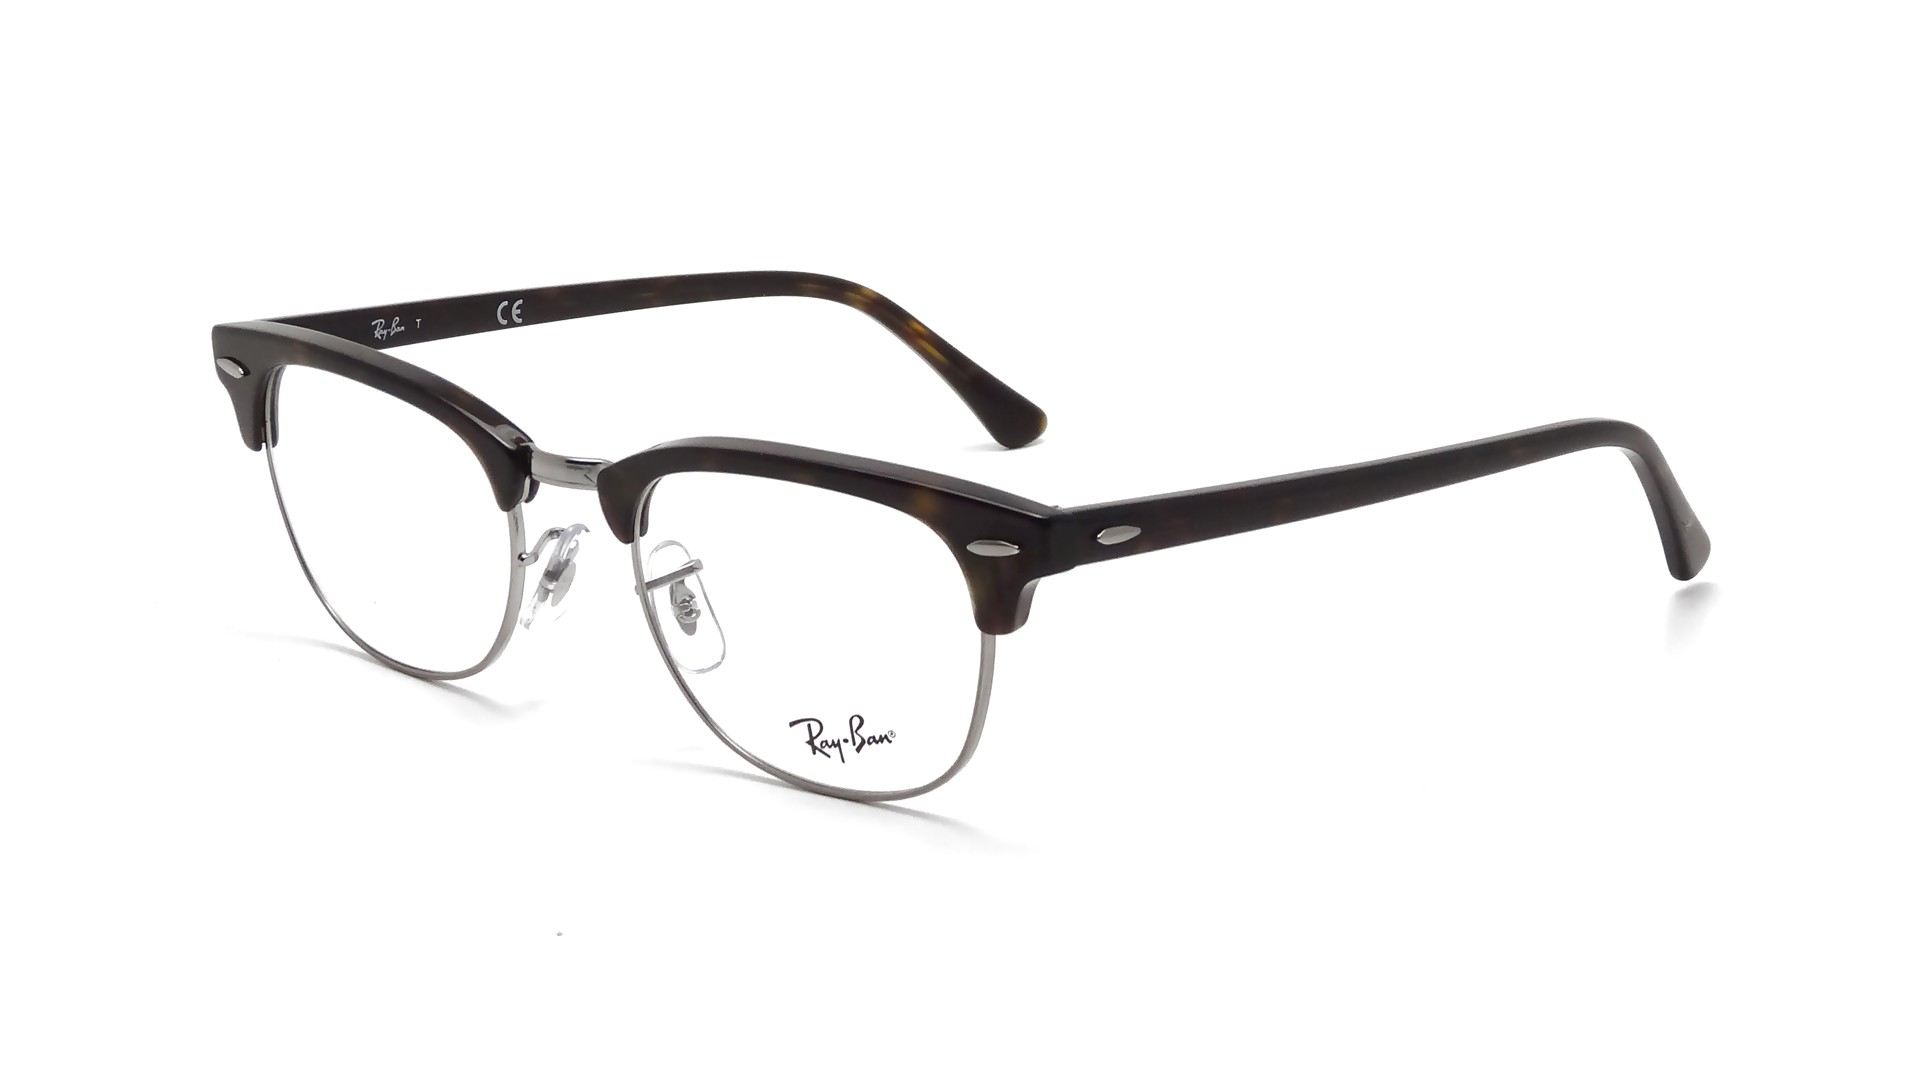 Lunettes de vue Ray-Ban Clubmaster Écaille RX5154 RB5154 2012 51-21   Prix  84,90 €   Visiofactory adc28ab953b2